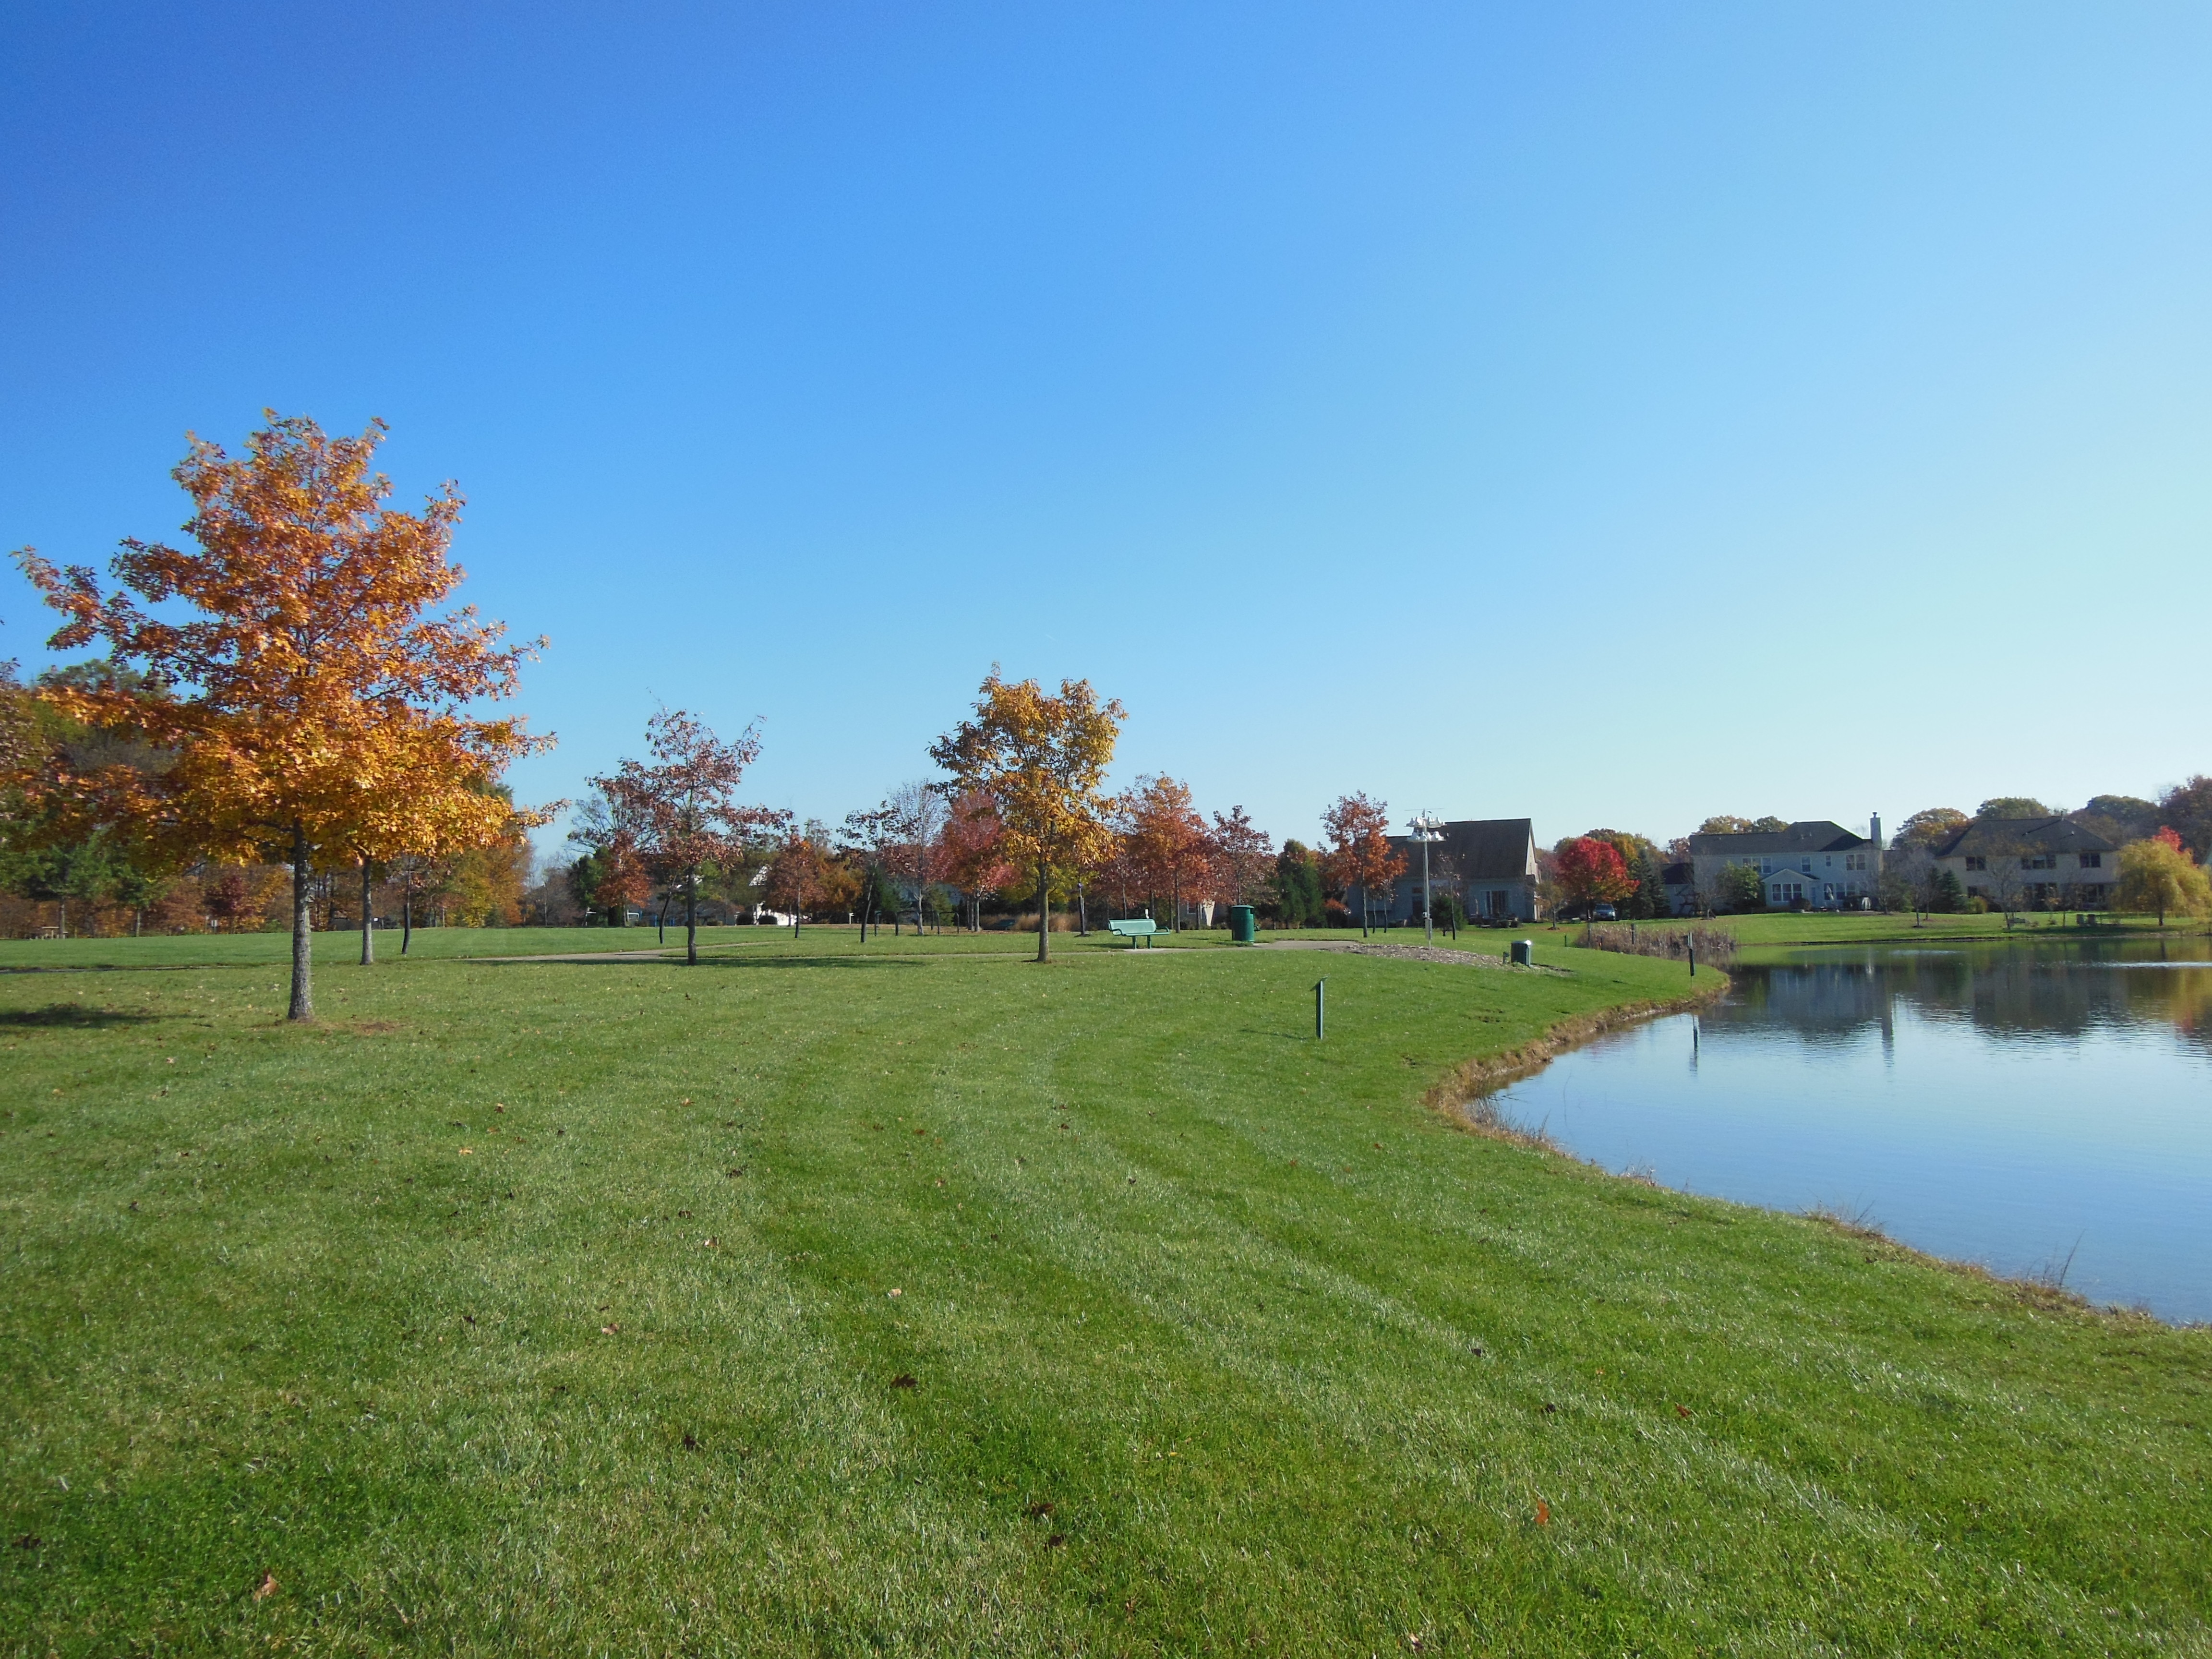 Just imagine this park within 5 minutes of your home